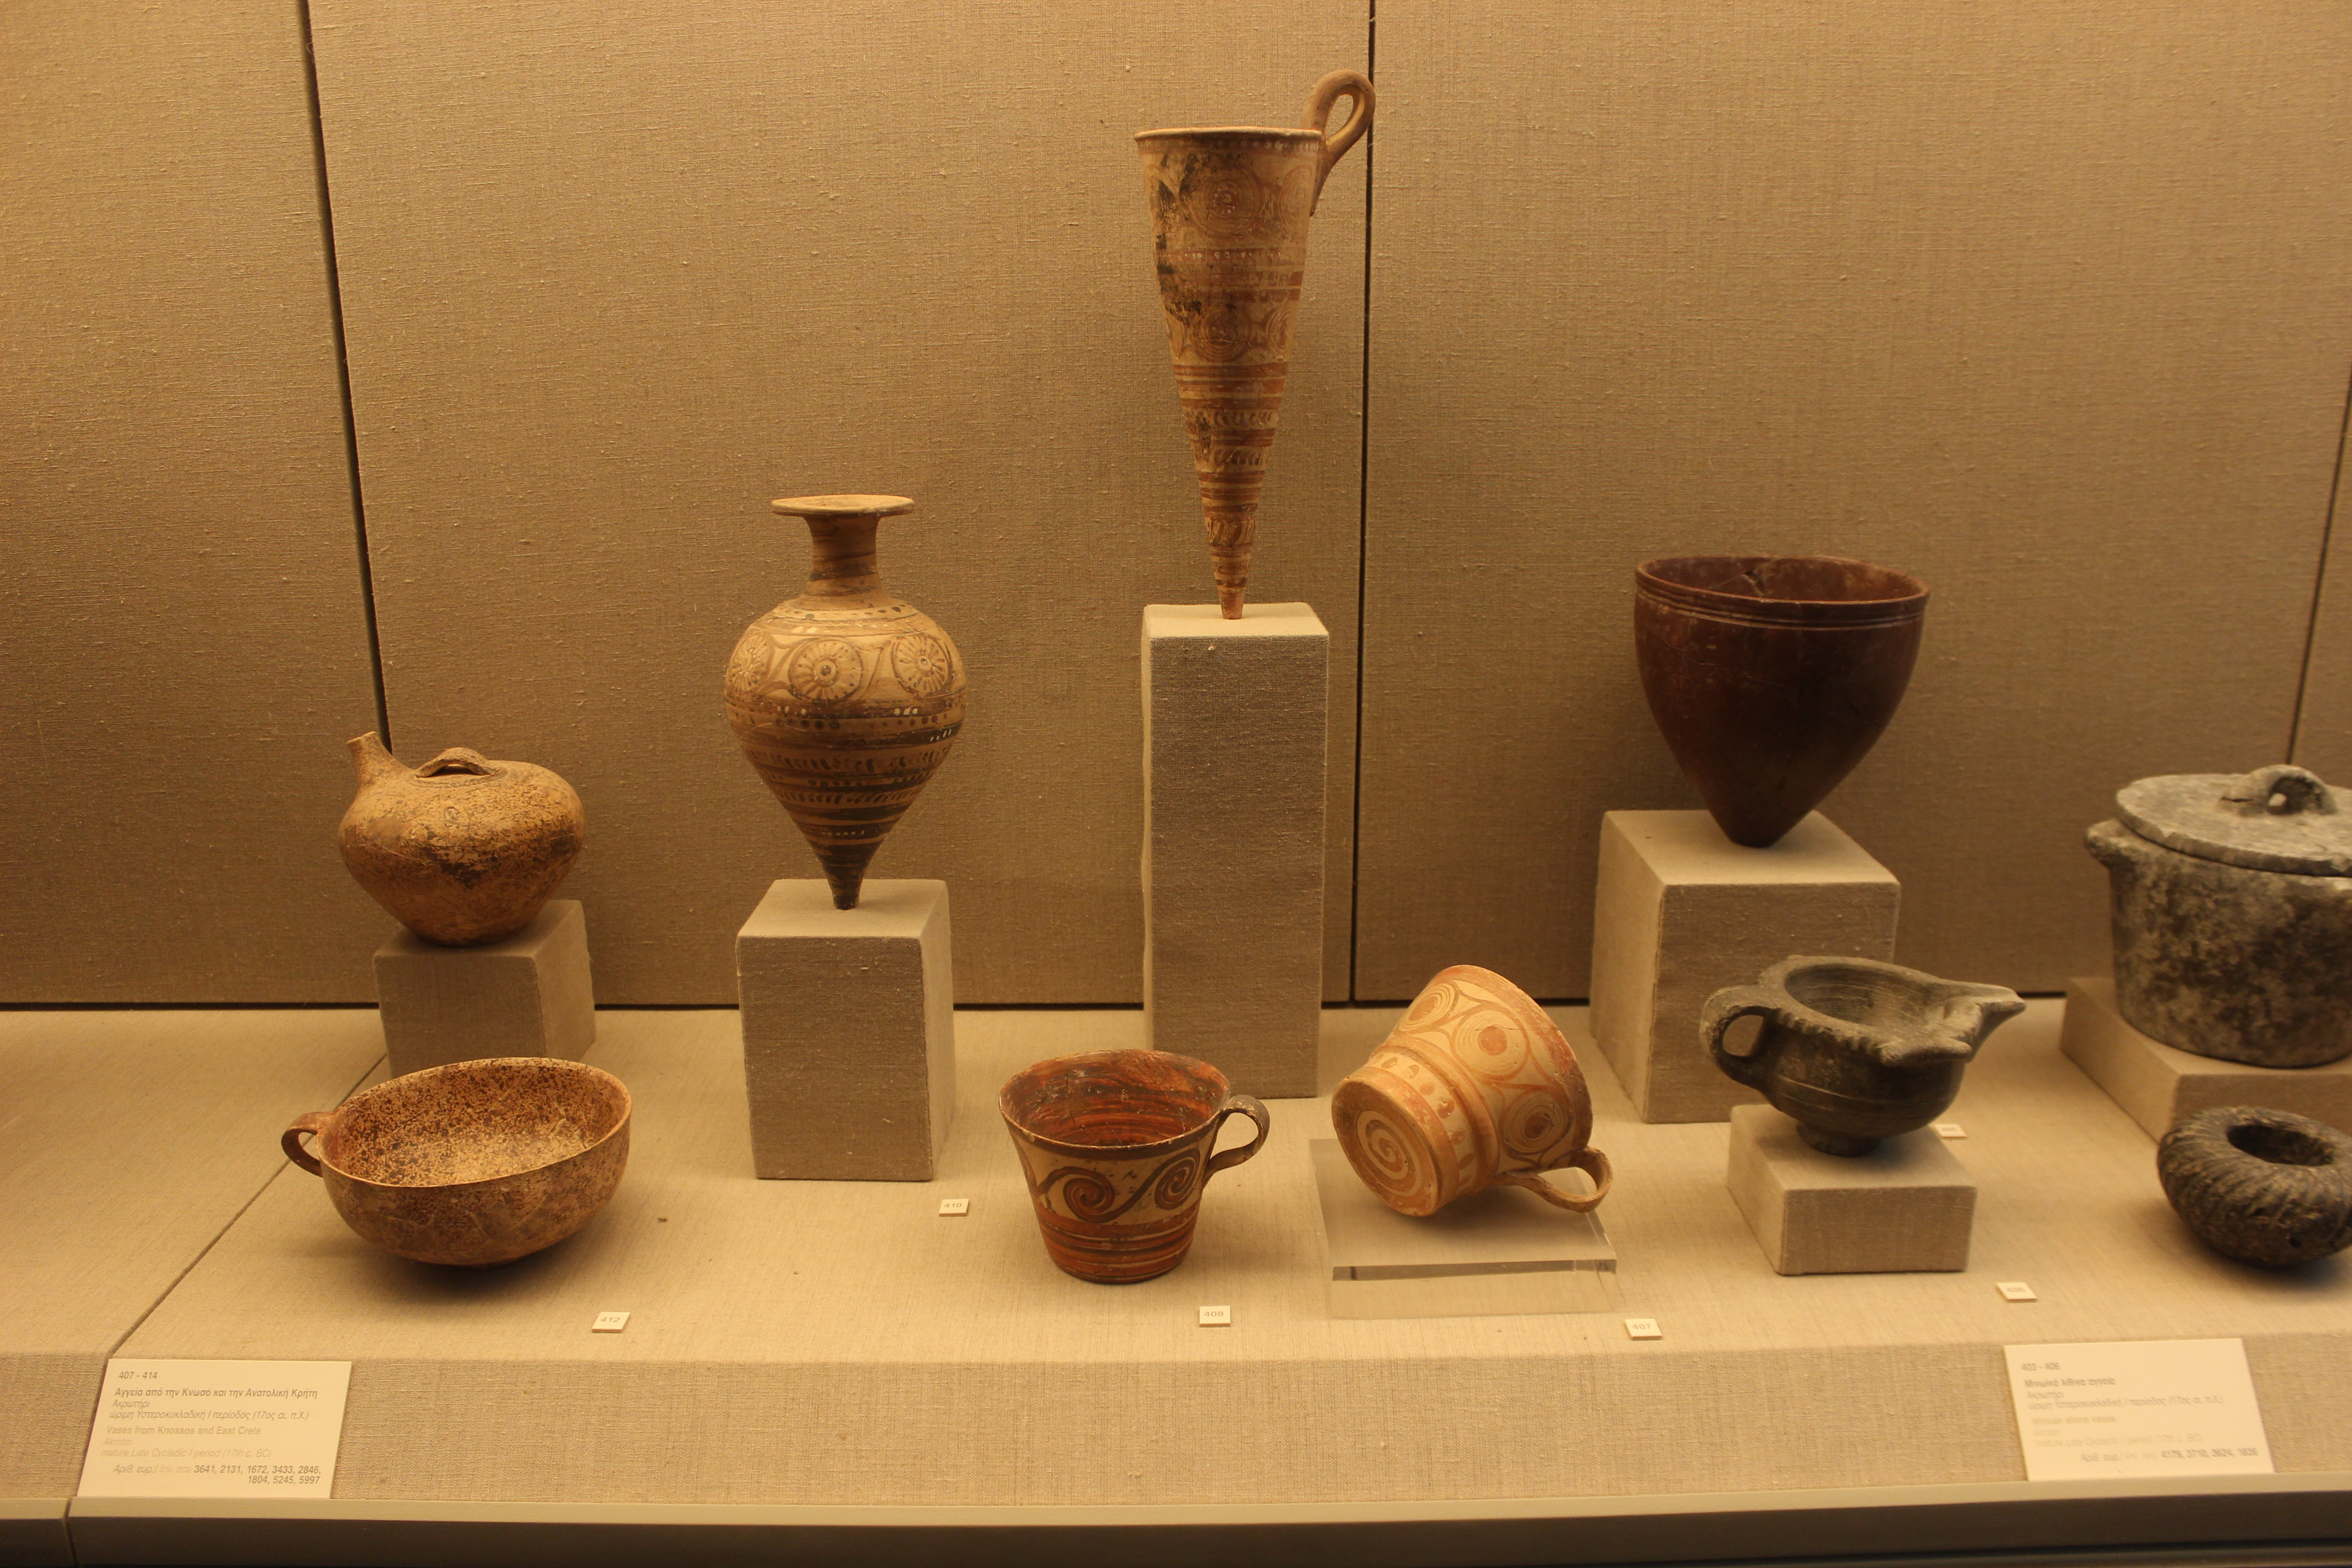 38. Vases from Knossos and East Crete - 17th c. BC. On the right – Minoan stone vases, 17th c. BC, Akrotiri (Ακρωτήρι). Museum of Firá, Santorini